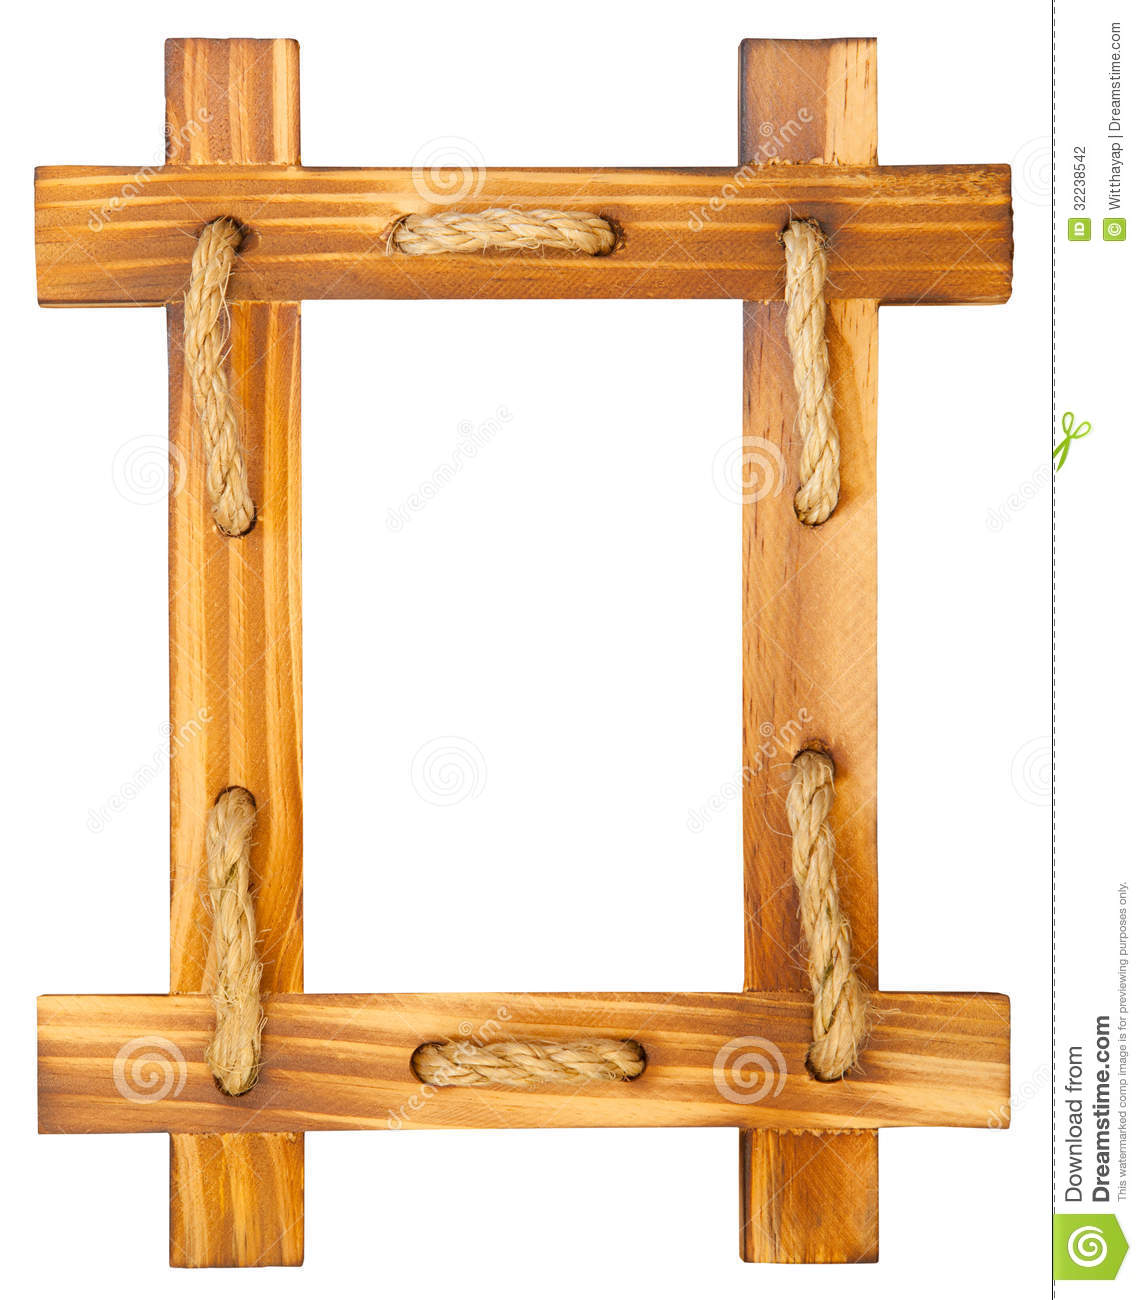 old wooden frame with rope